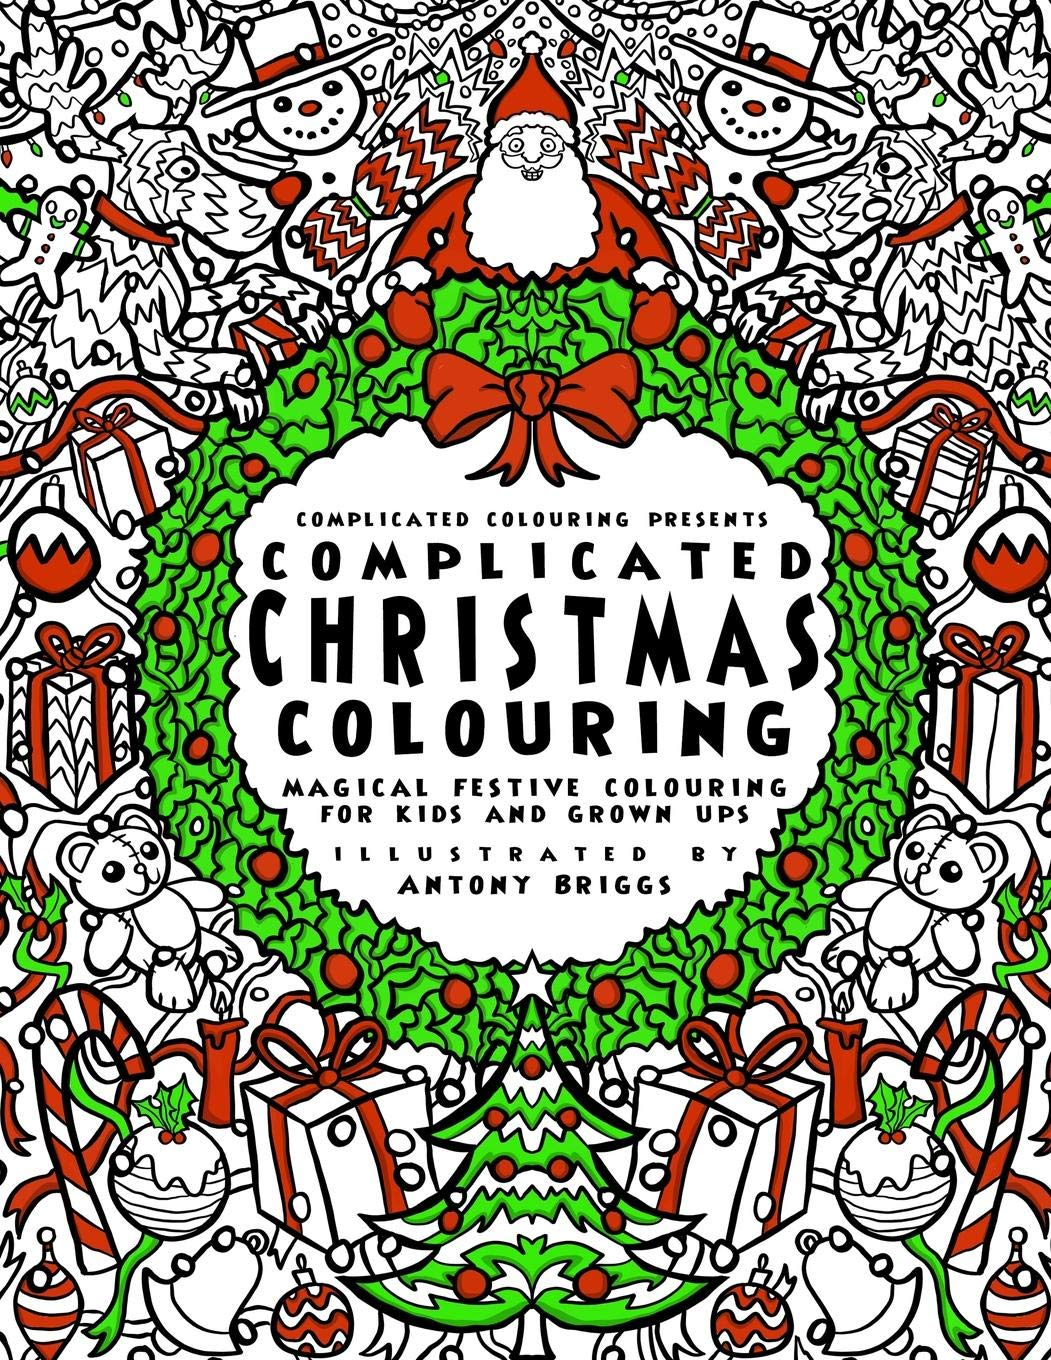 Complicated christmas colouring book magical festive colouring for adults and children complicated colouring paperback november 11 2016